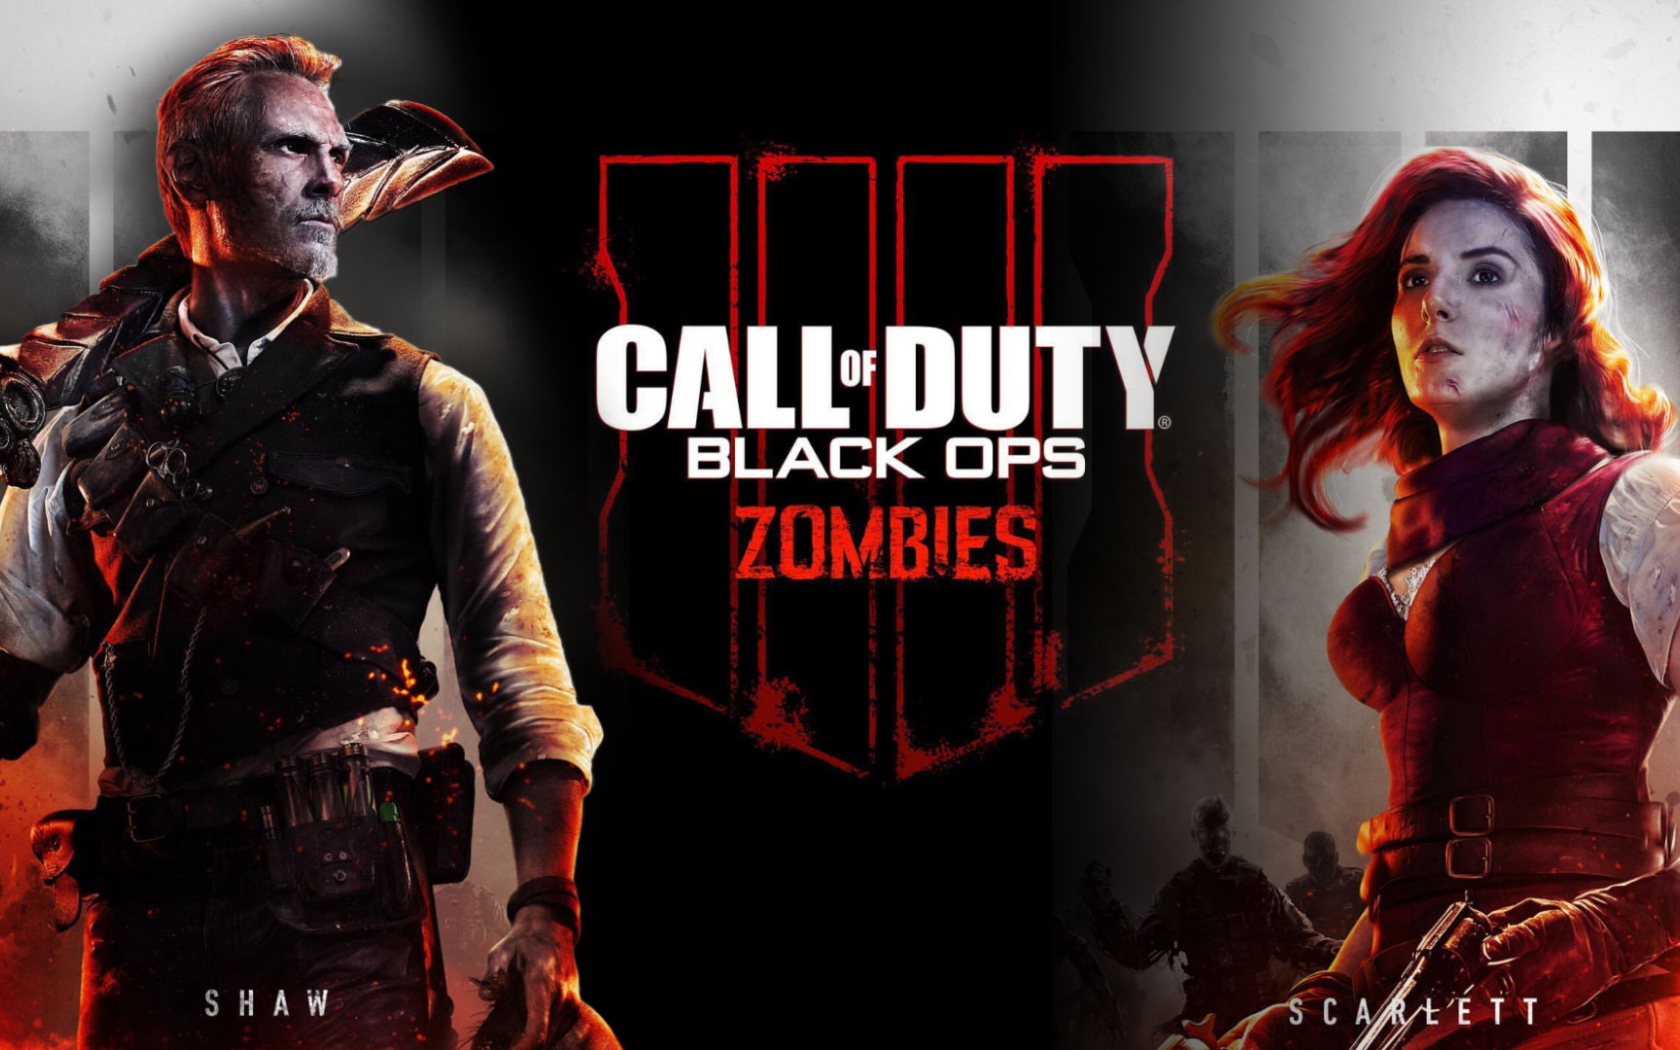 Free Download Black Ops 4 Zombie Wallpaper Frs Handy Codinfobase